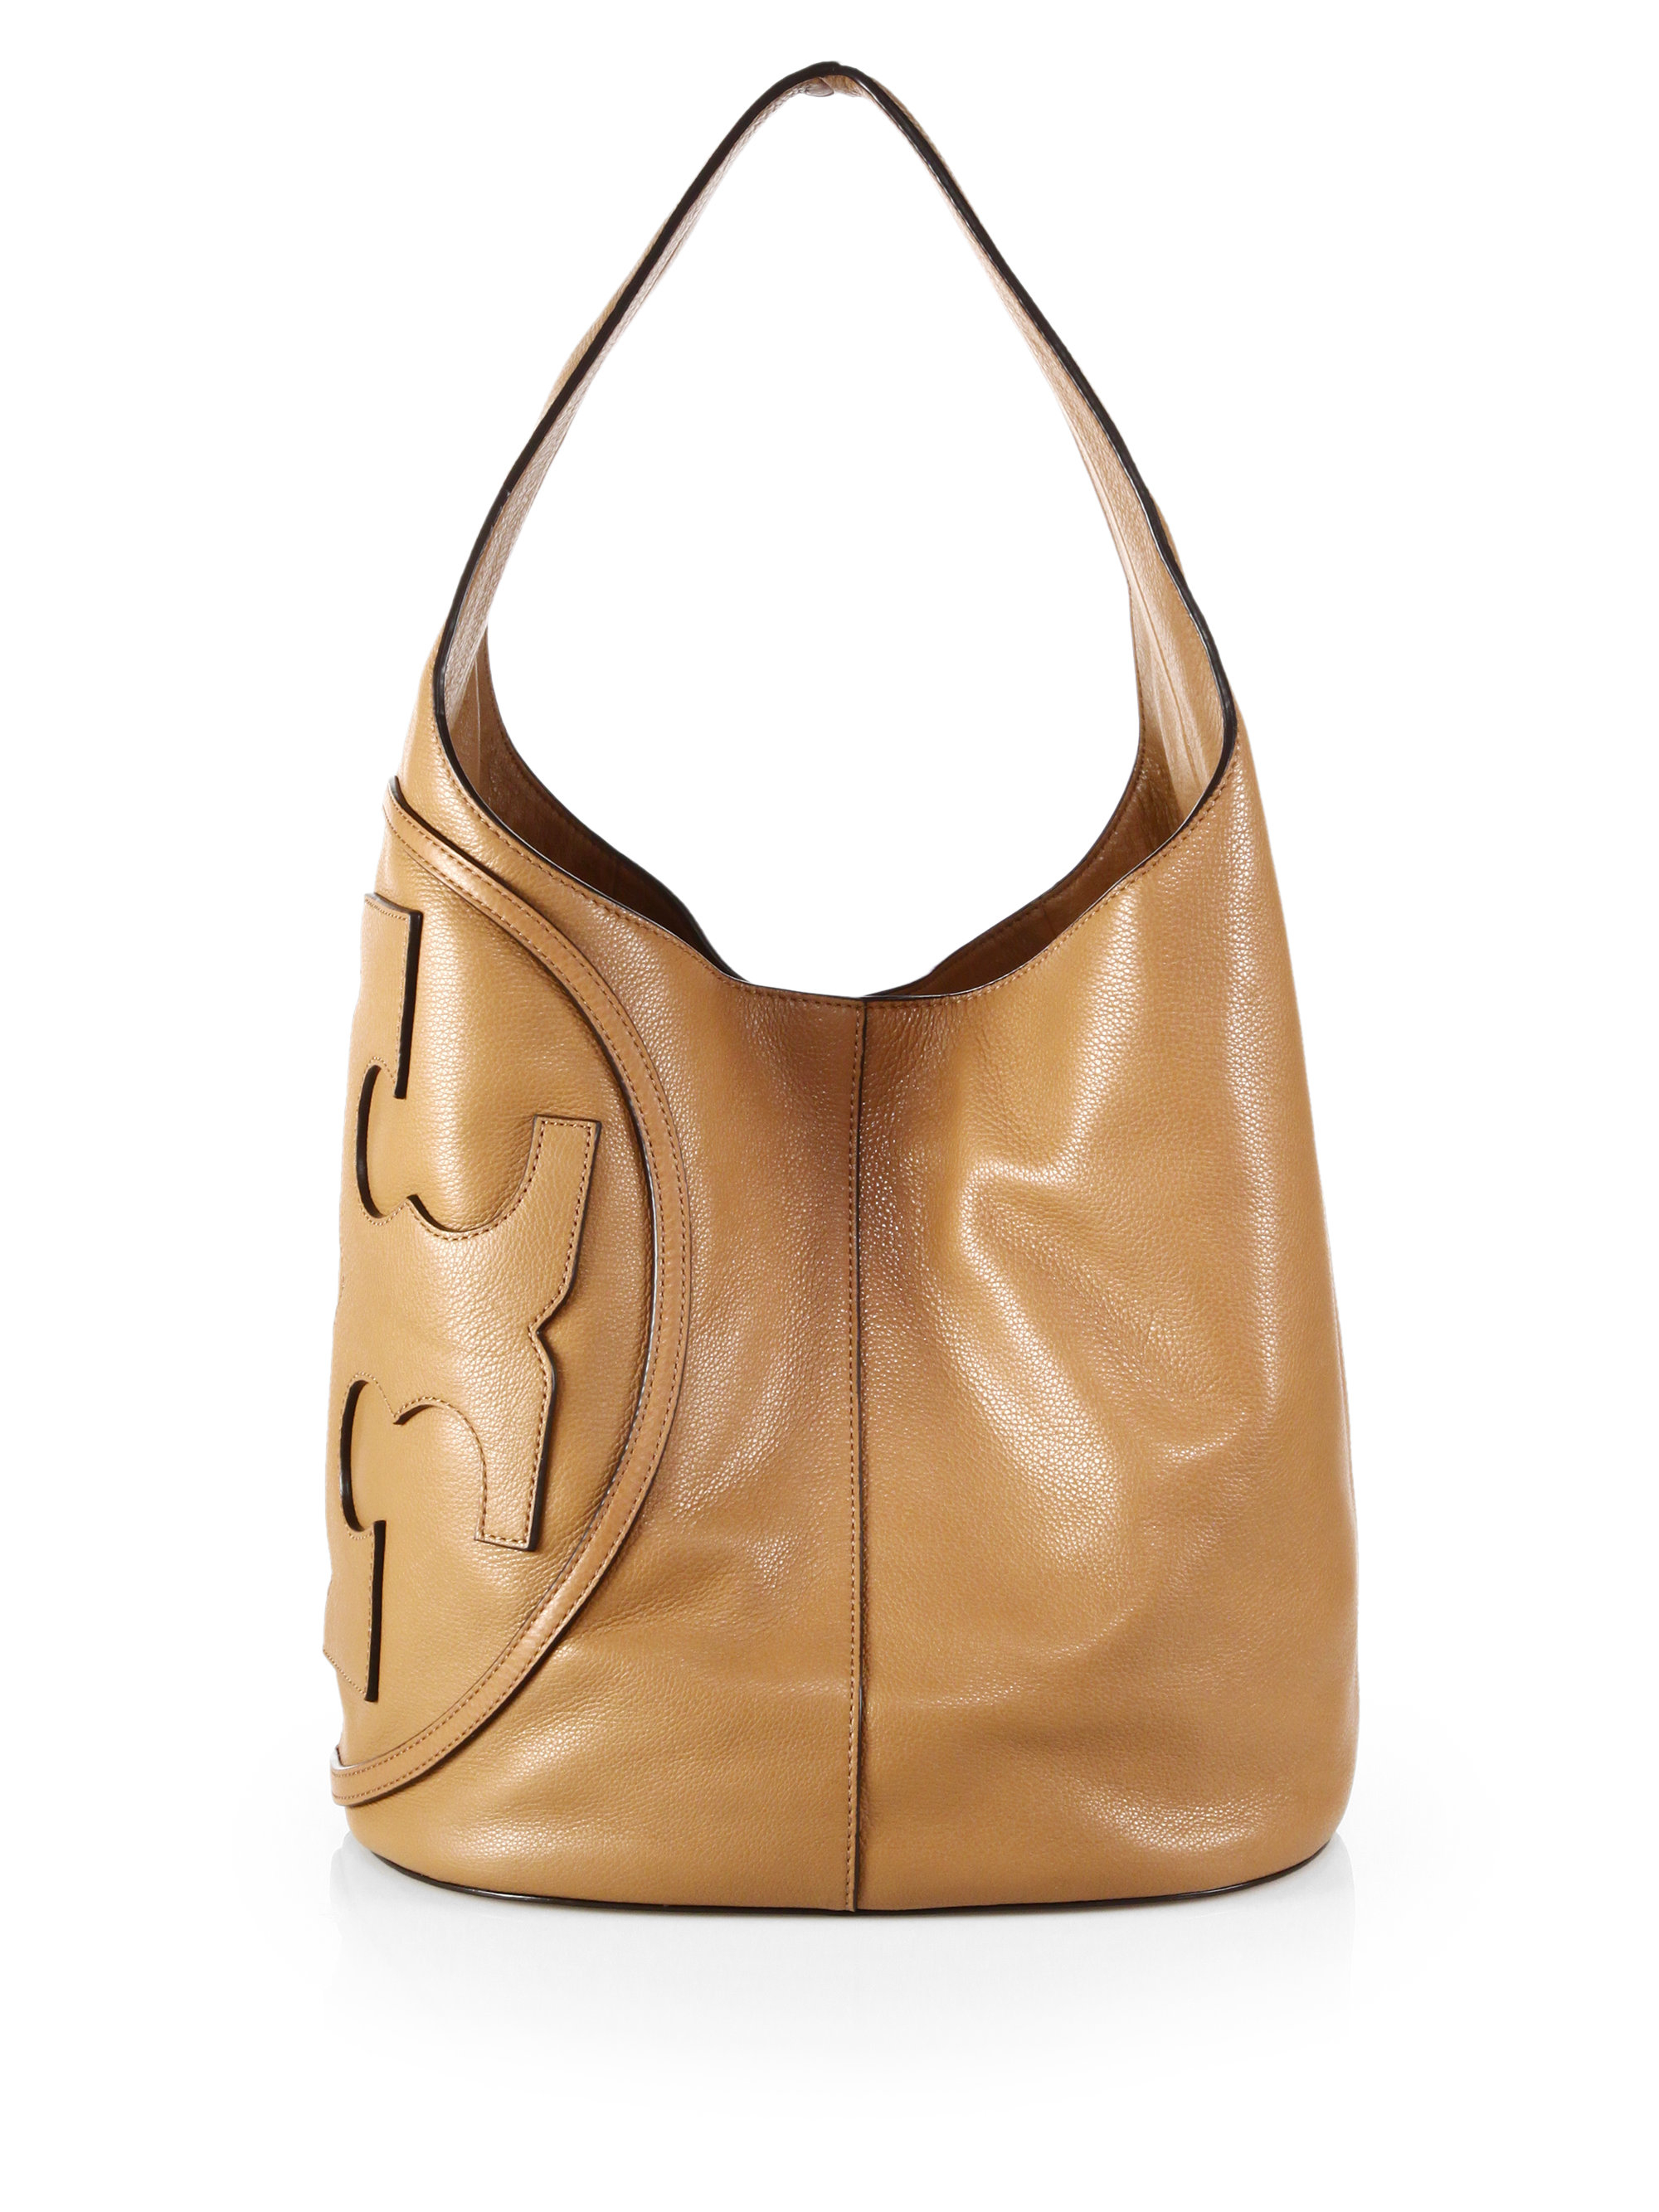 Tory burch All T Hobo in Natural  Lyst